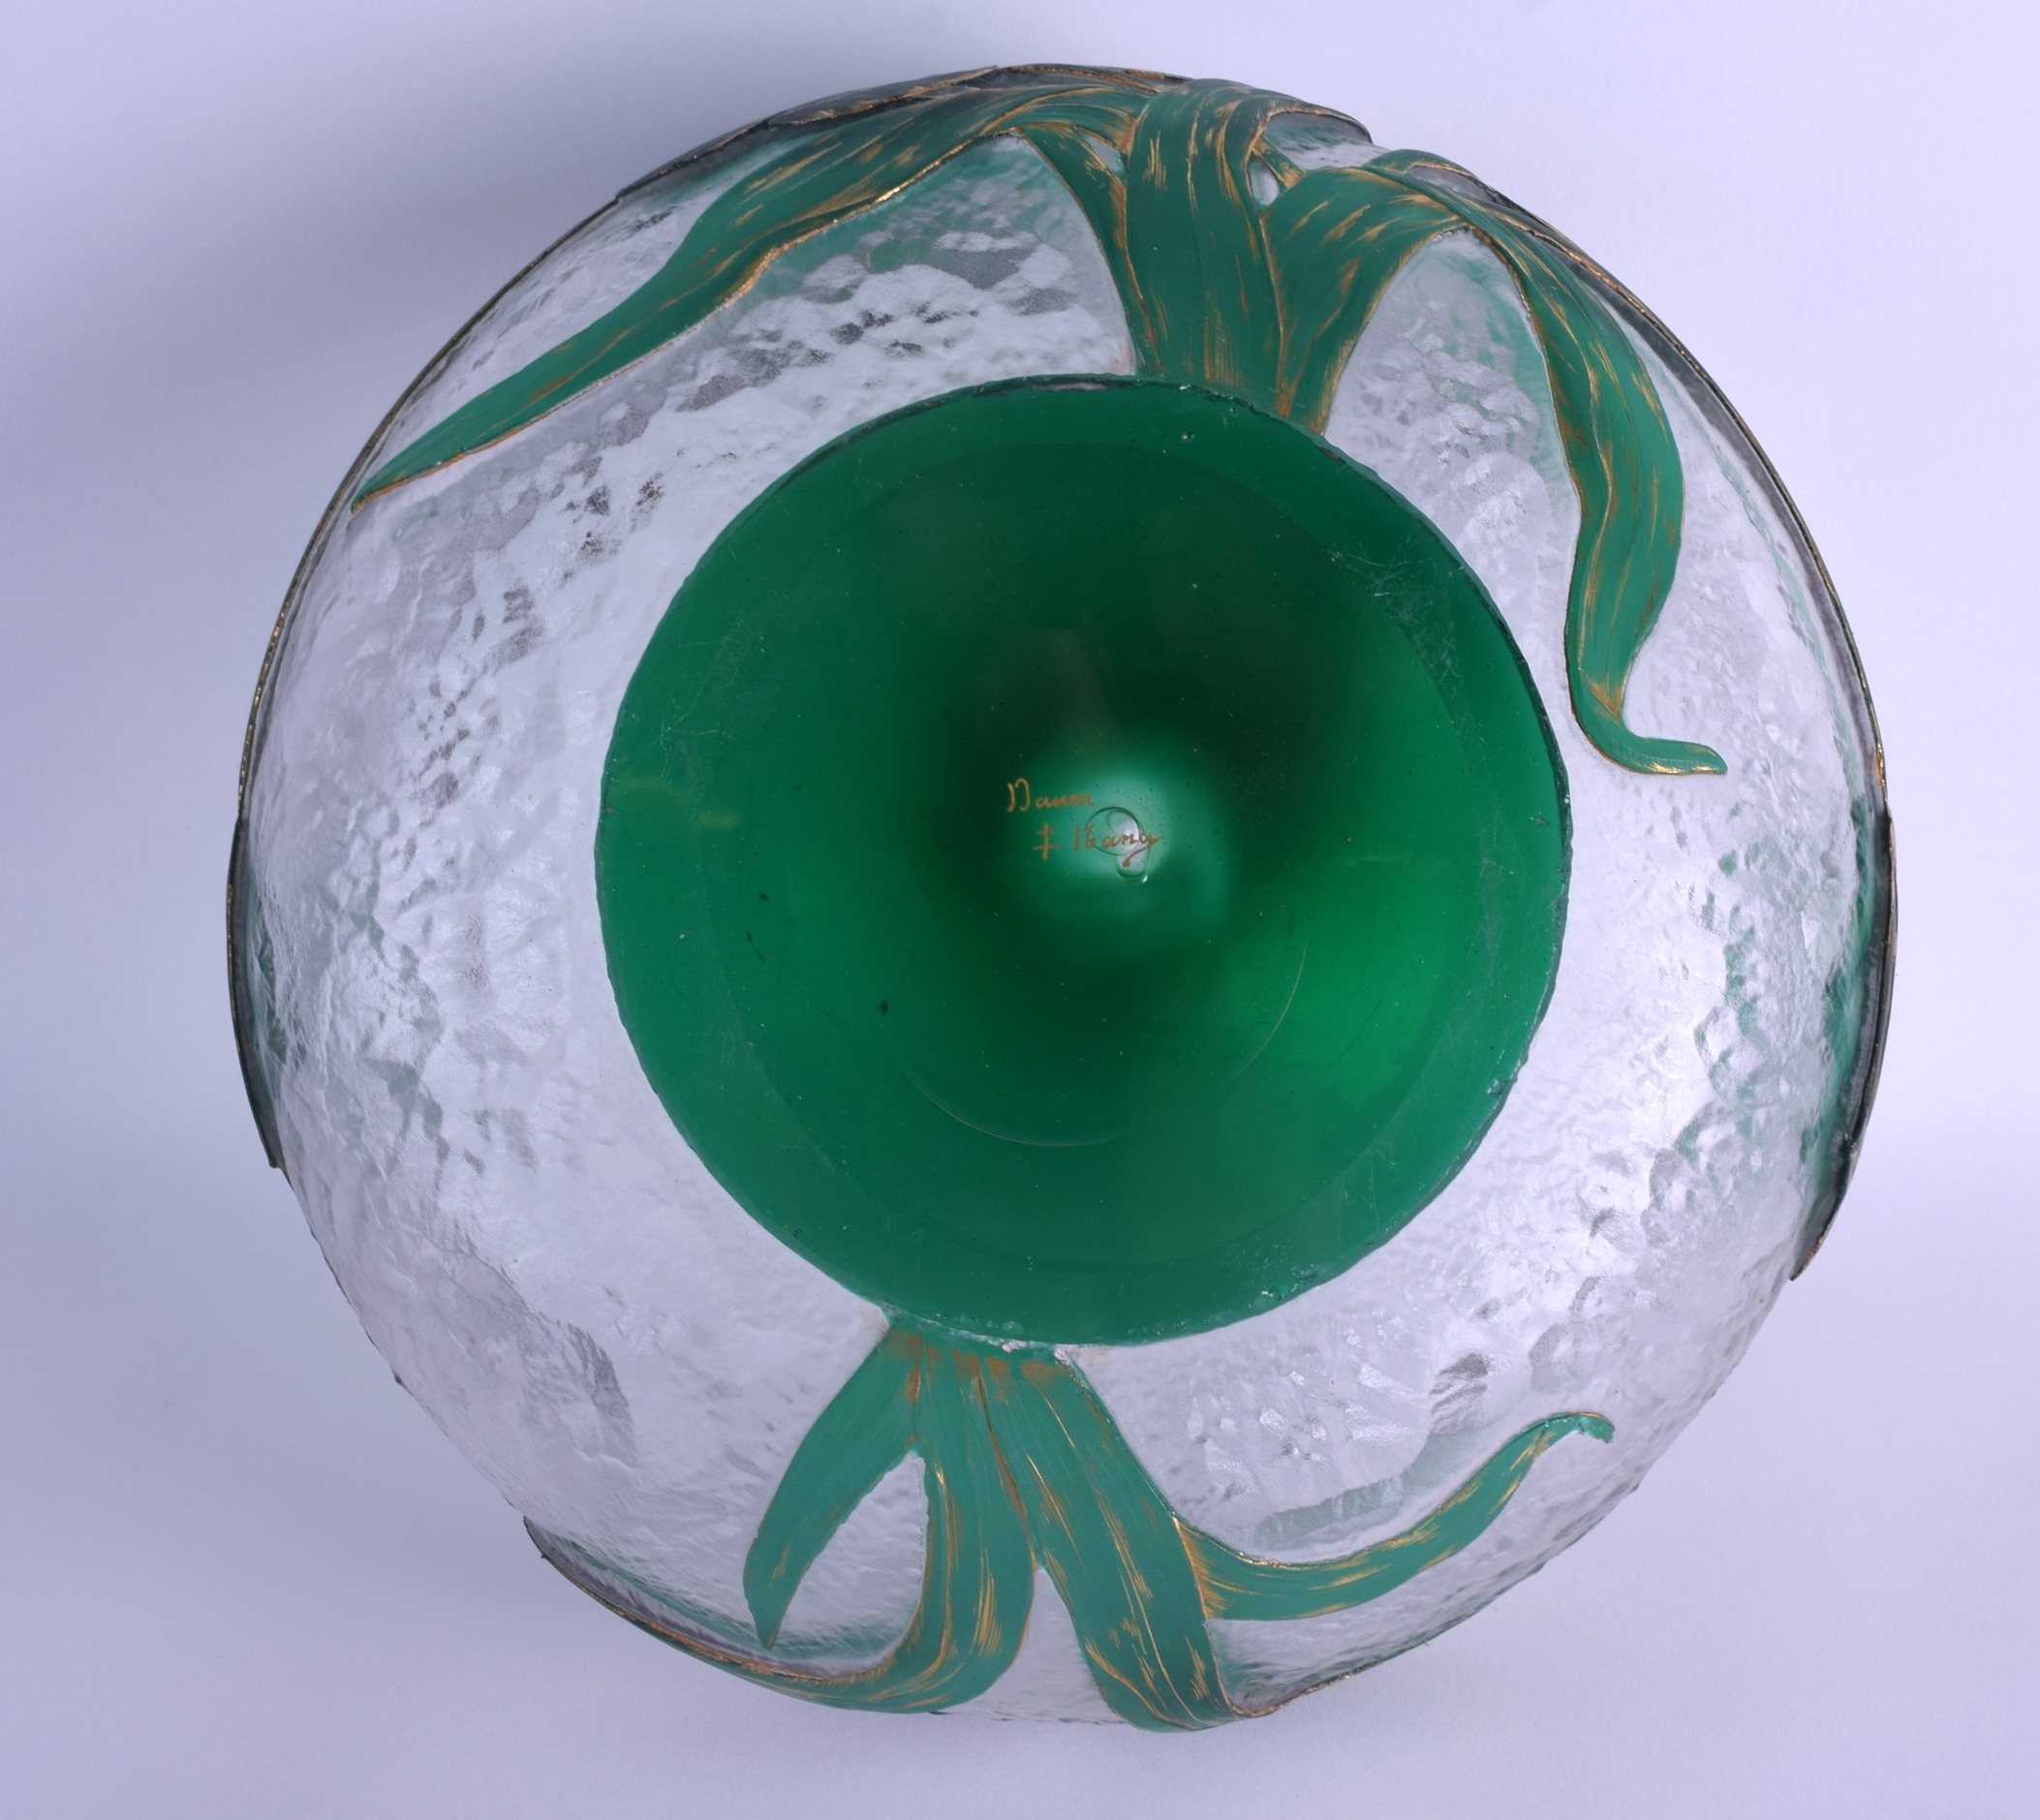 Lot 14 - A LARGE FRENCH ART NOUVEAU DAUM NANCY CAMEO GLASS BOWL with acanthus capped overlay to the rim. 25